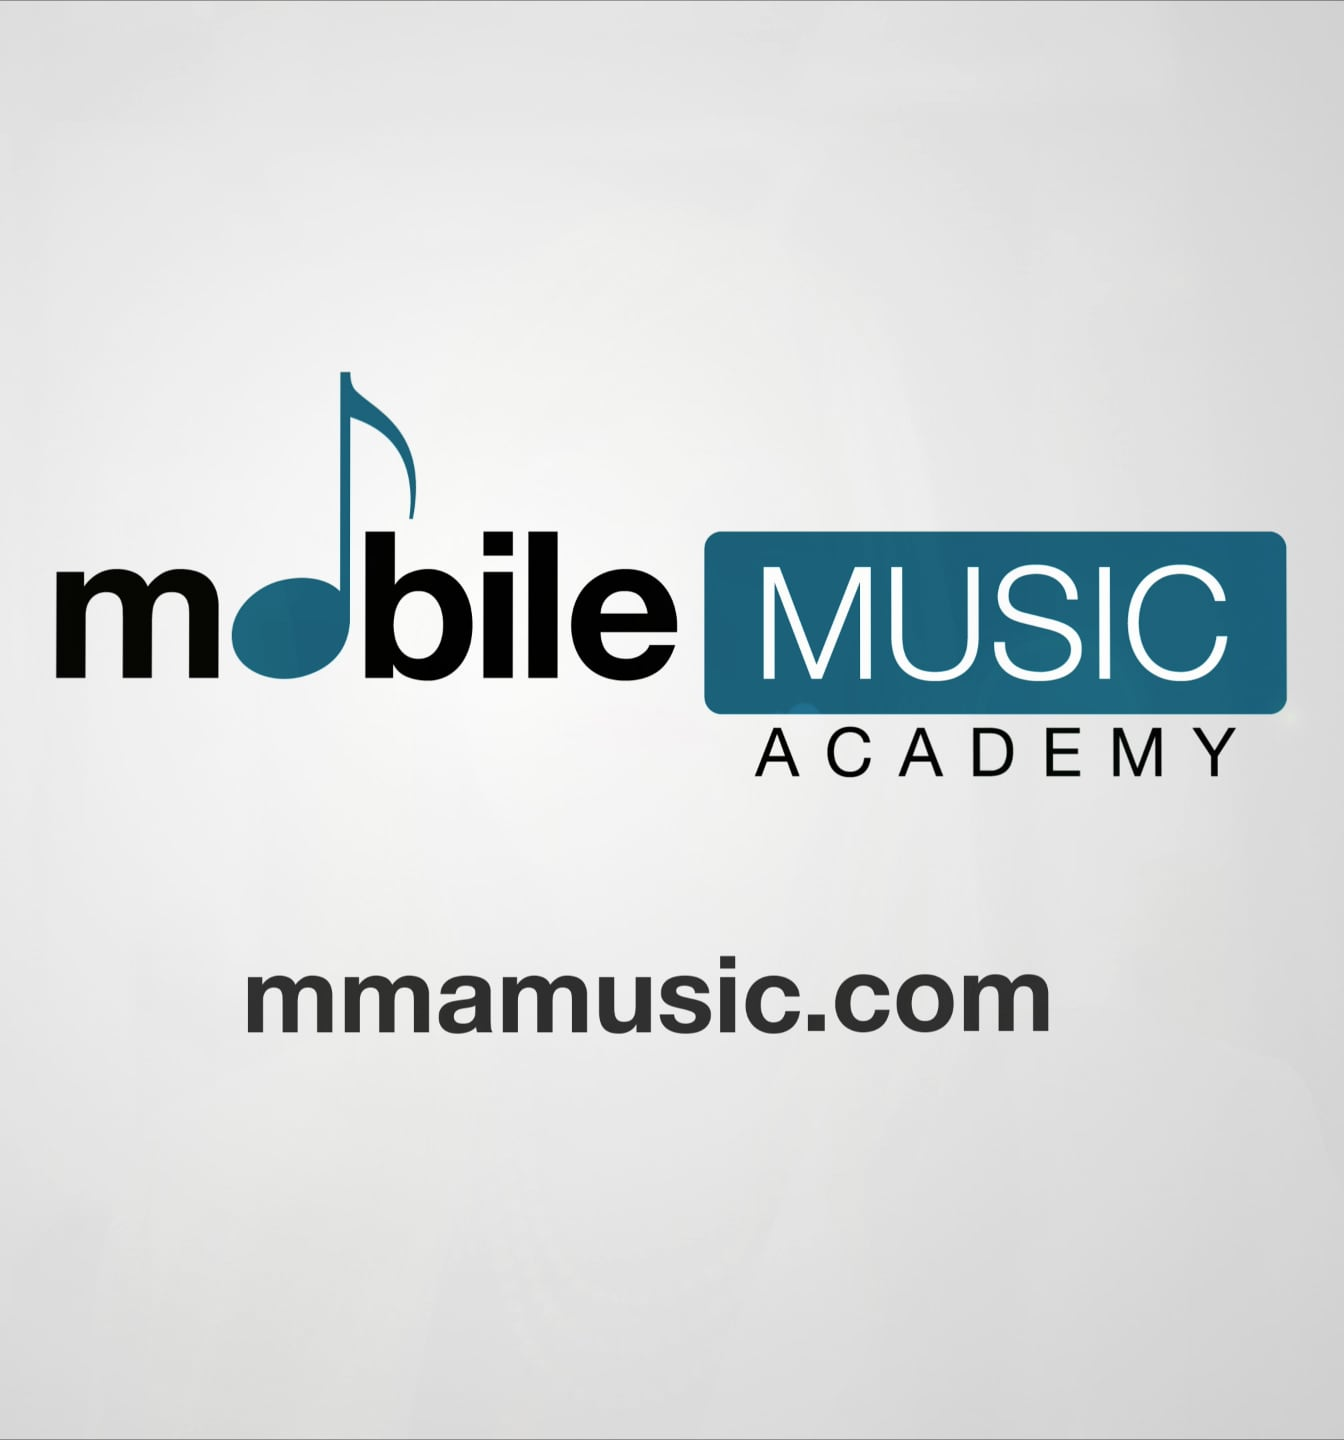 Mobile Music Academy Website